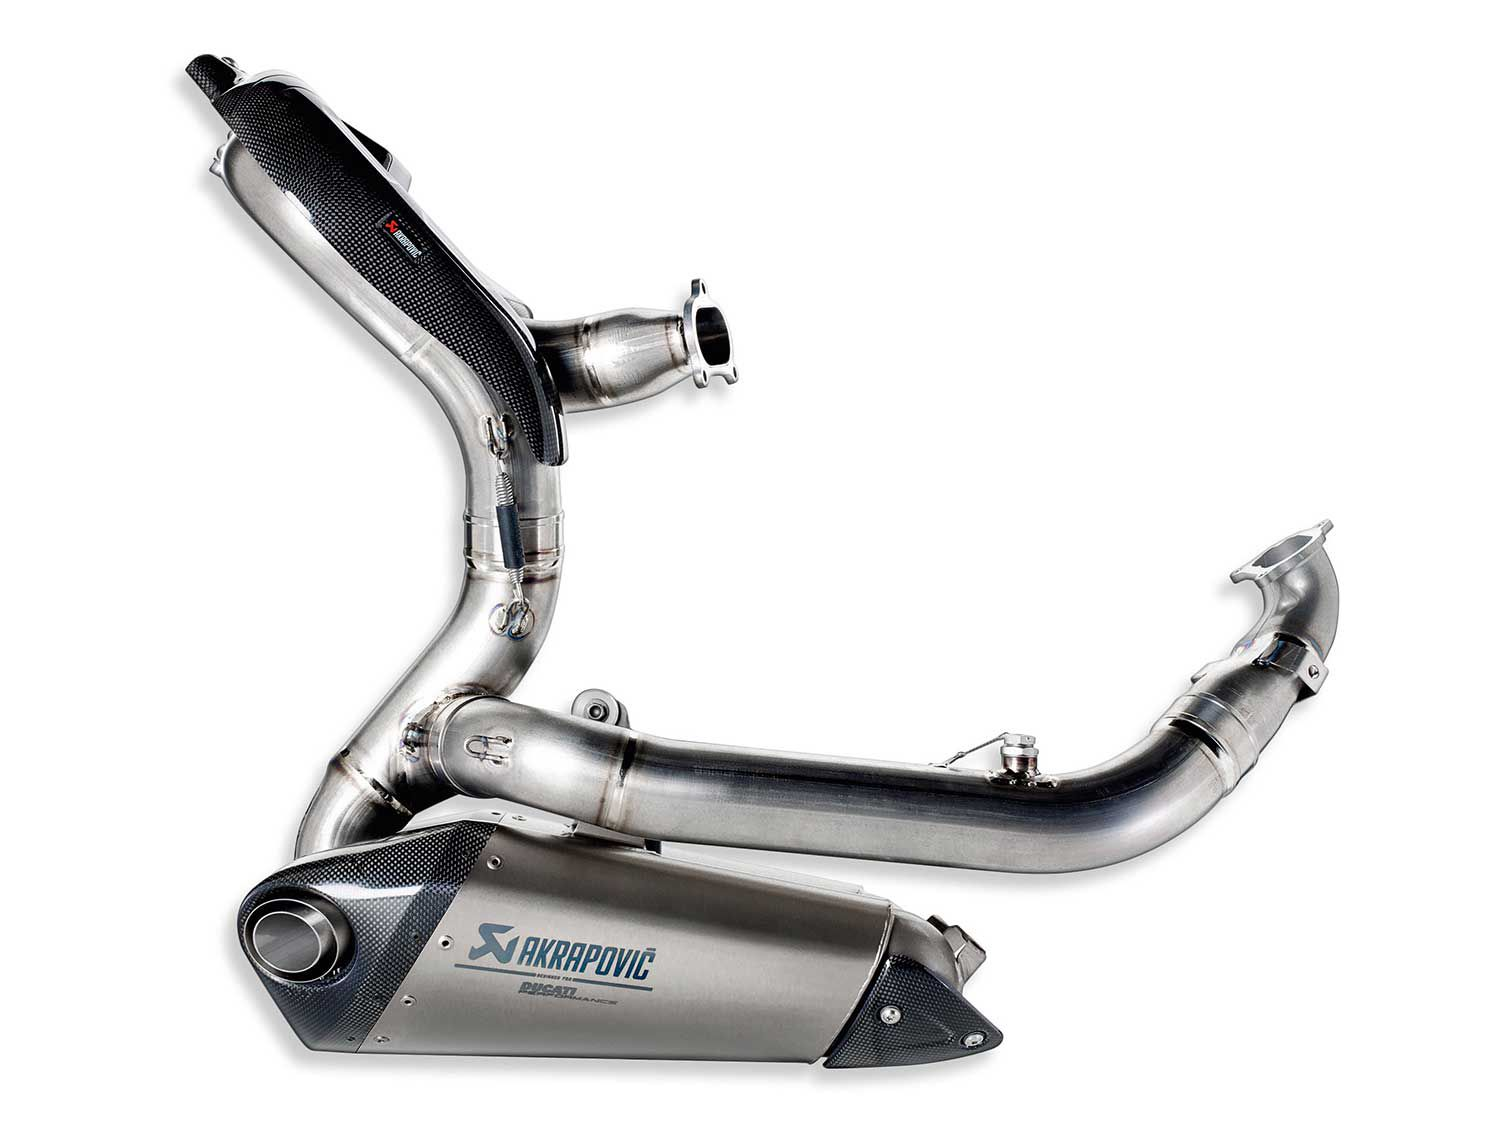 This is the aftermarket exhaust option, but shows the shape of the pipe clearly. Note the extra loop the rear cylinder's header has to create (under the seat, famously) in order to match the length of the front.